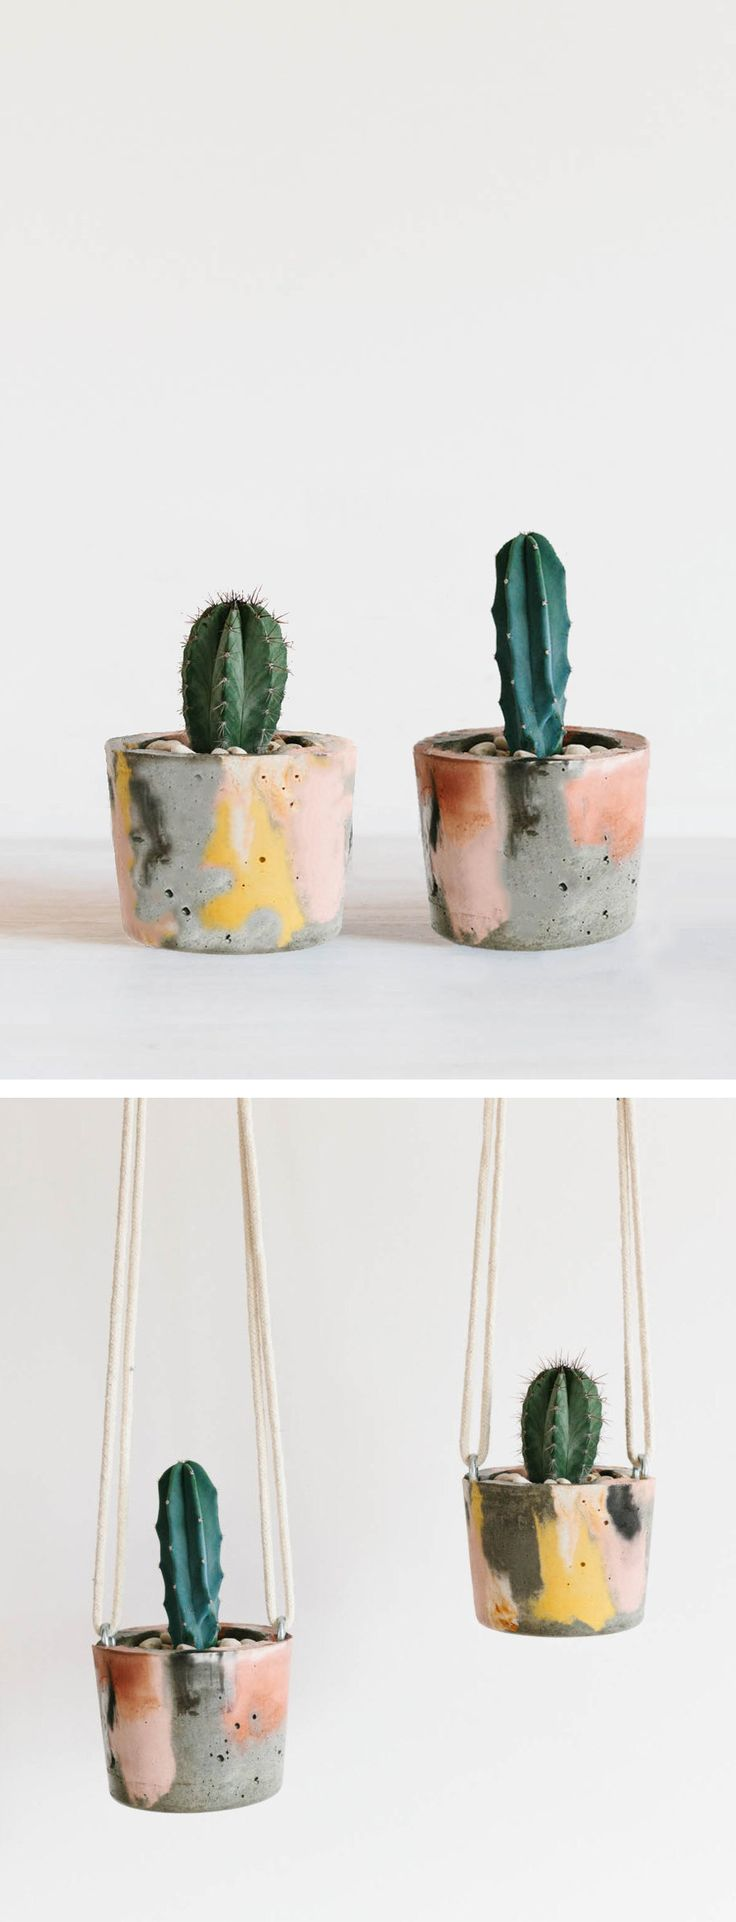 Hanging Concrete Planter / Planter / Pot Plant / Hanging Pot Plant / Concrete Planter / Object Design / Product Design / Fox